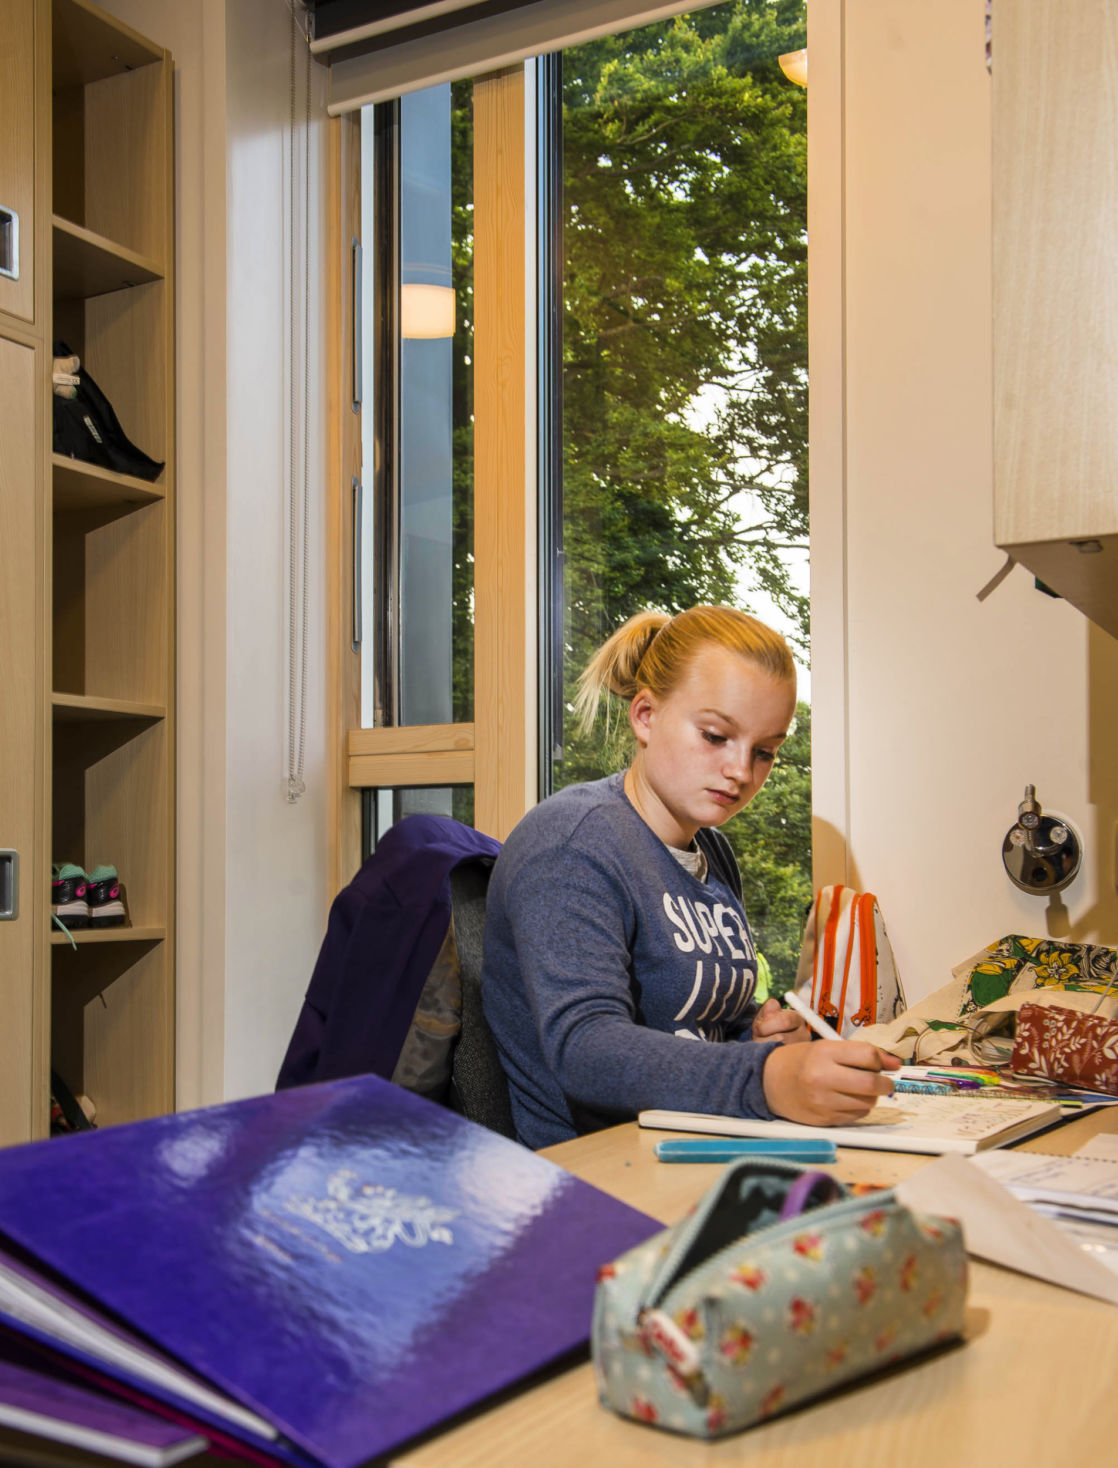 wycliffe senior pupil studying in her room